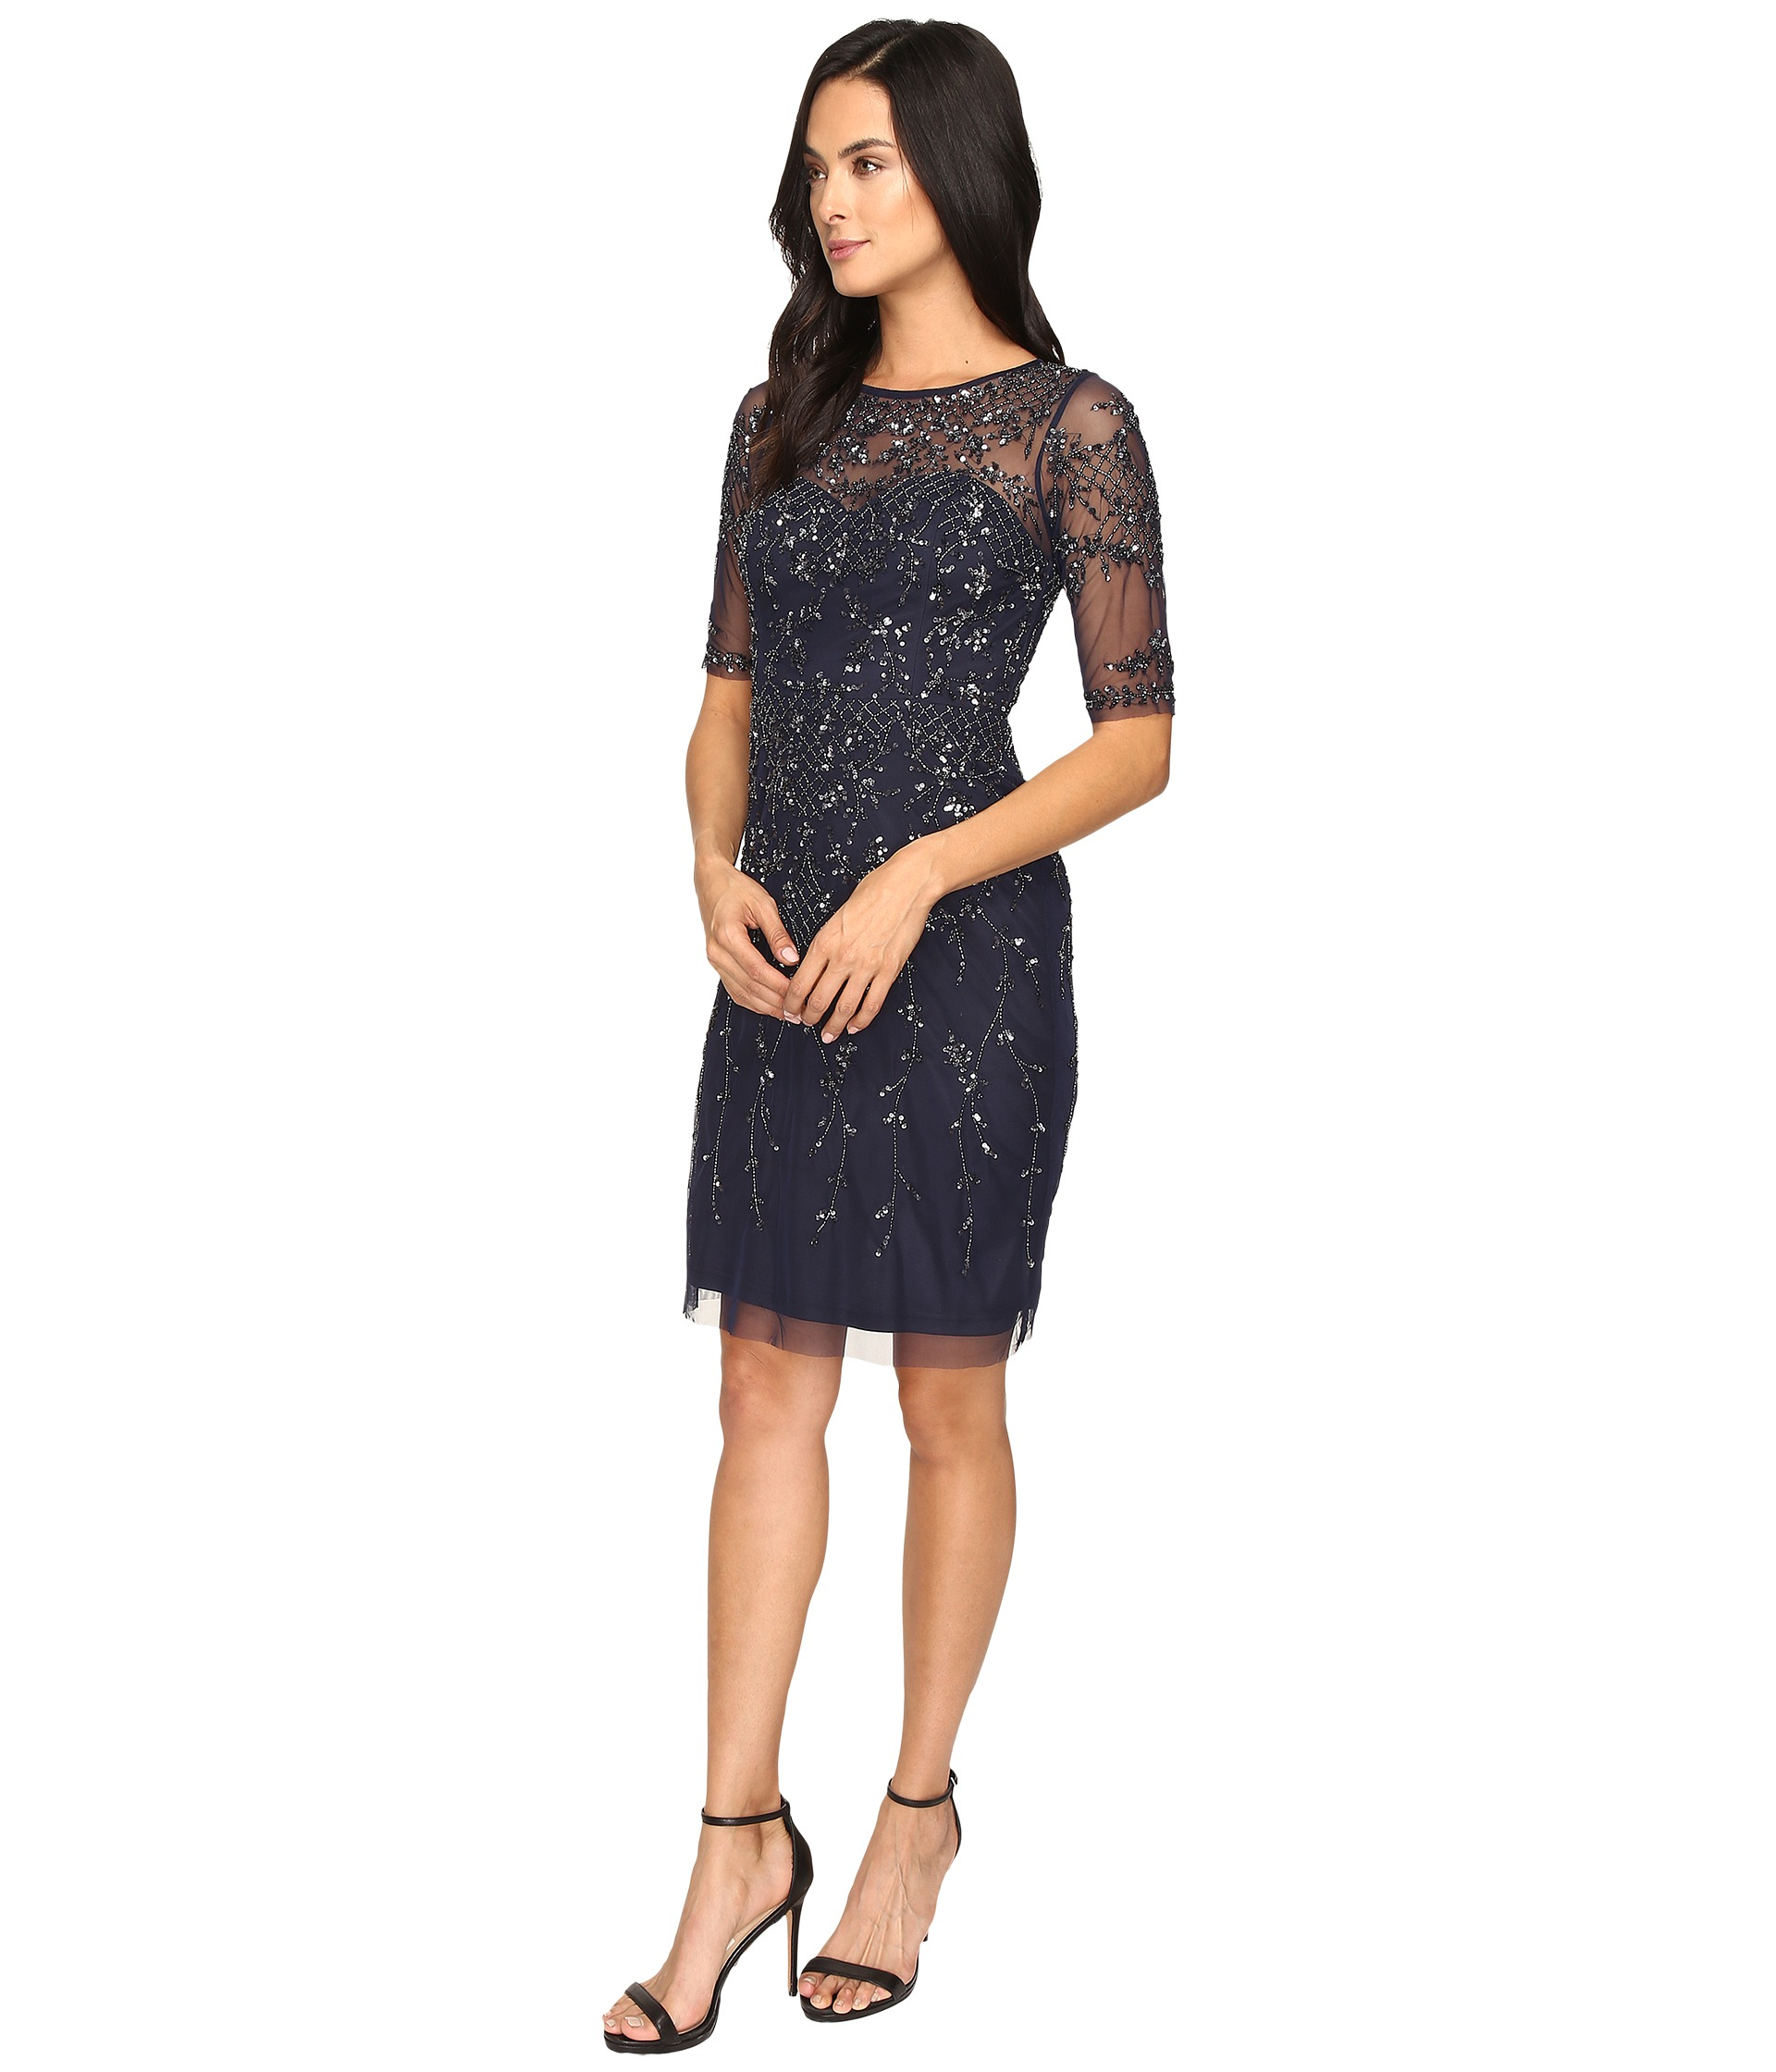 3 4 sleeve cocktail dresses zappos